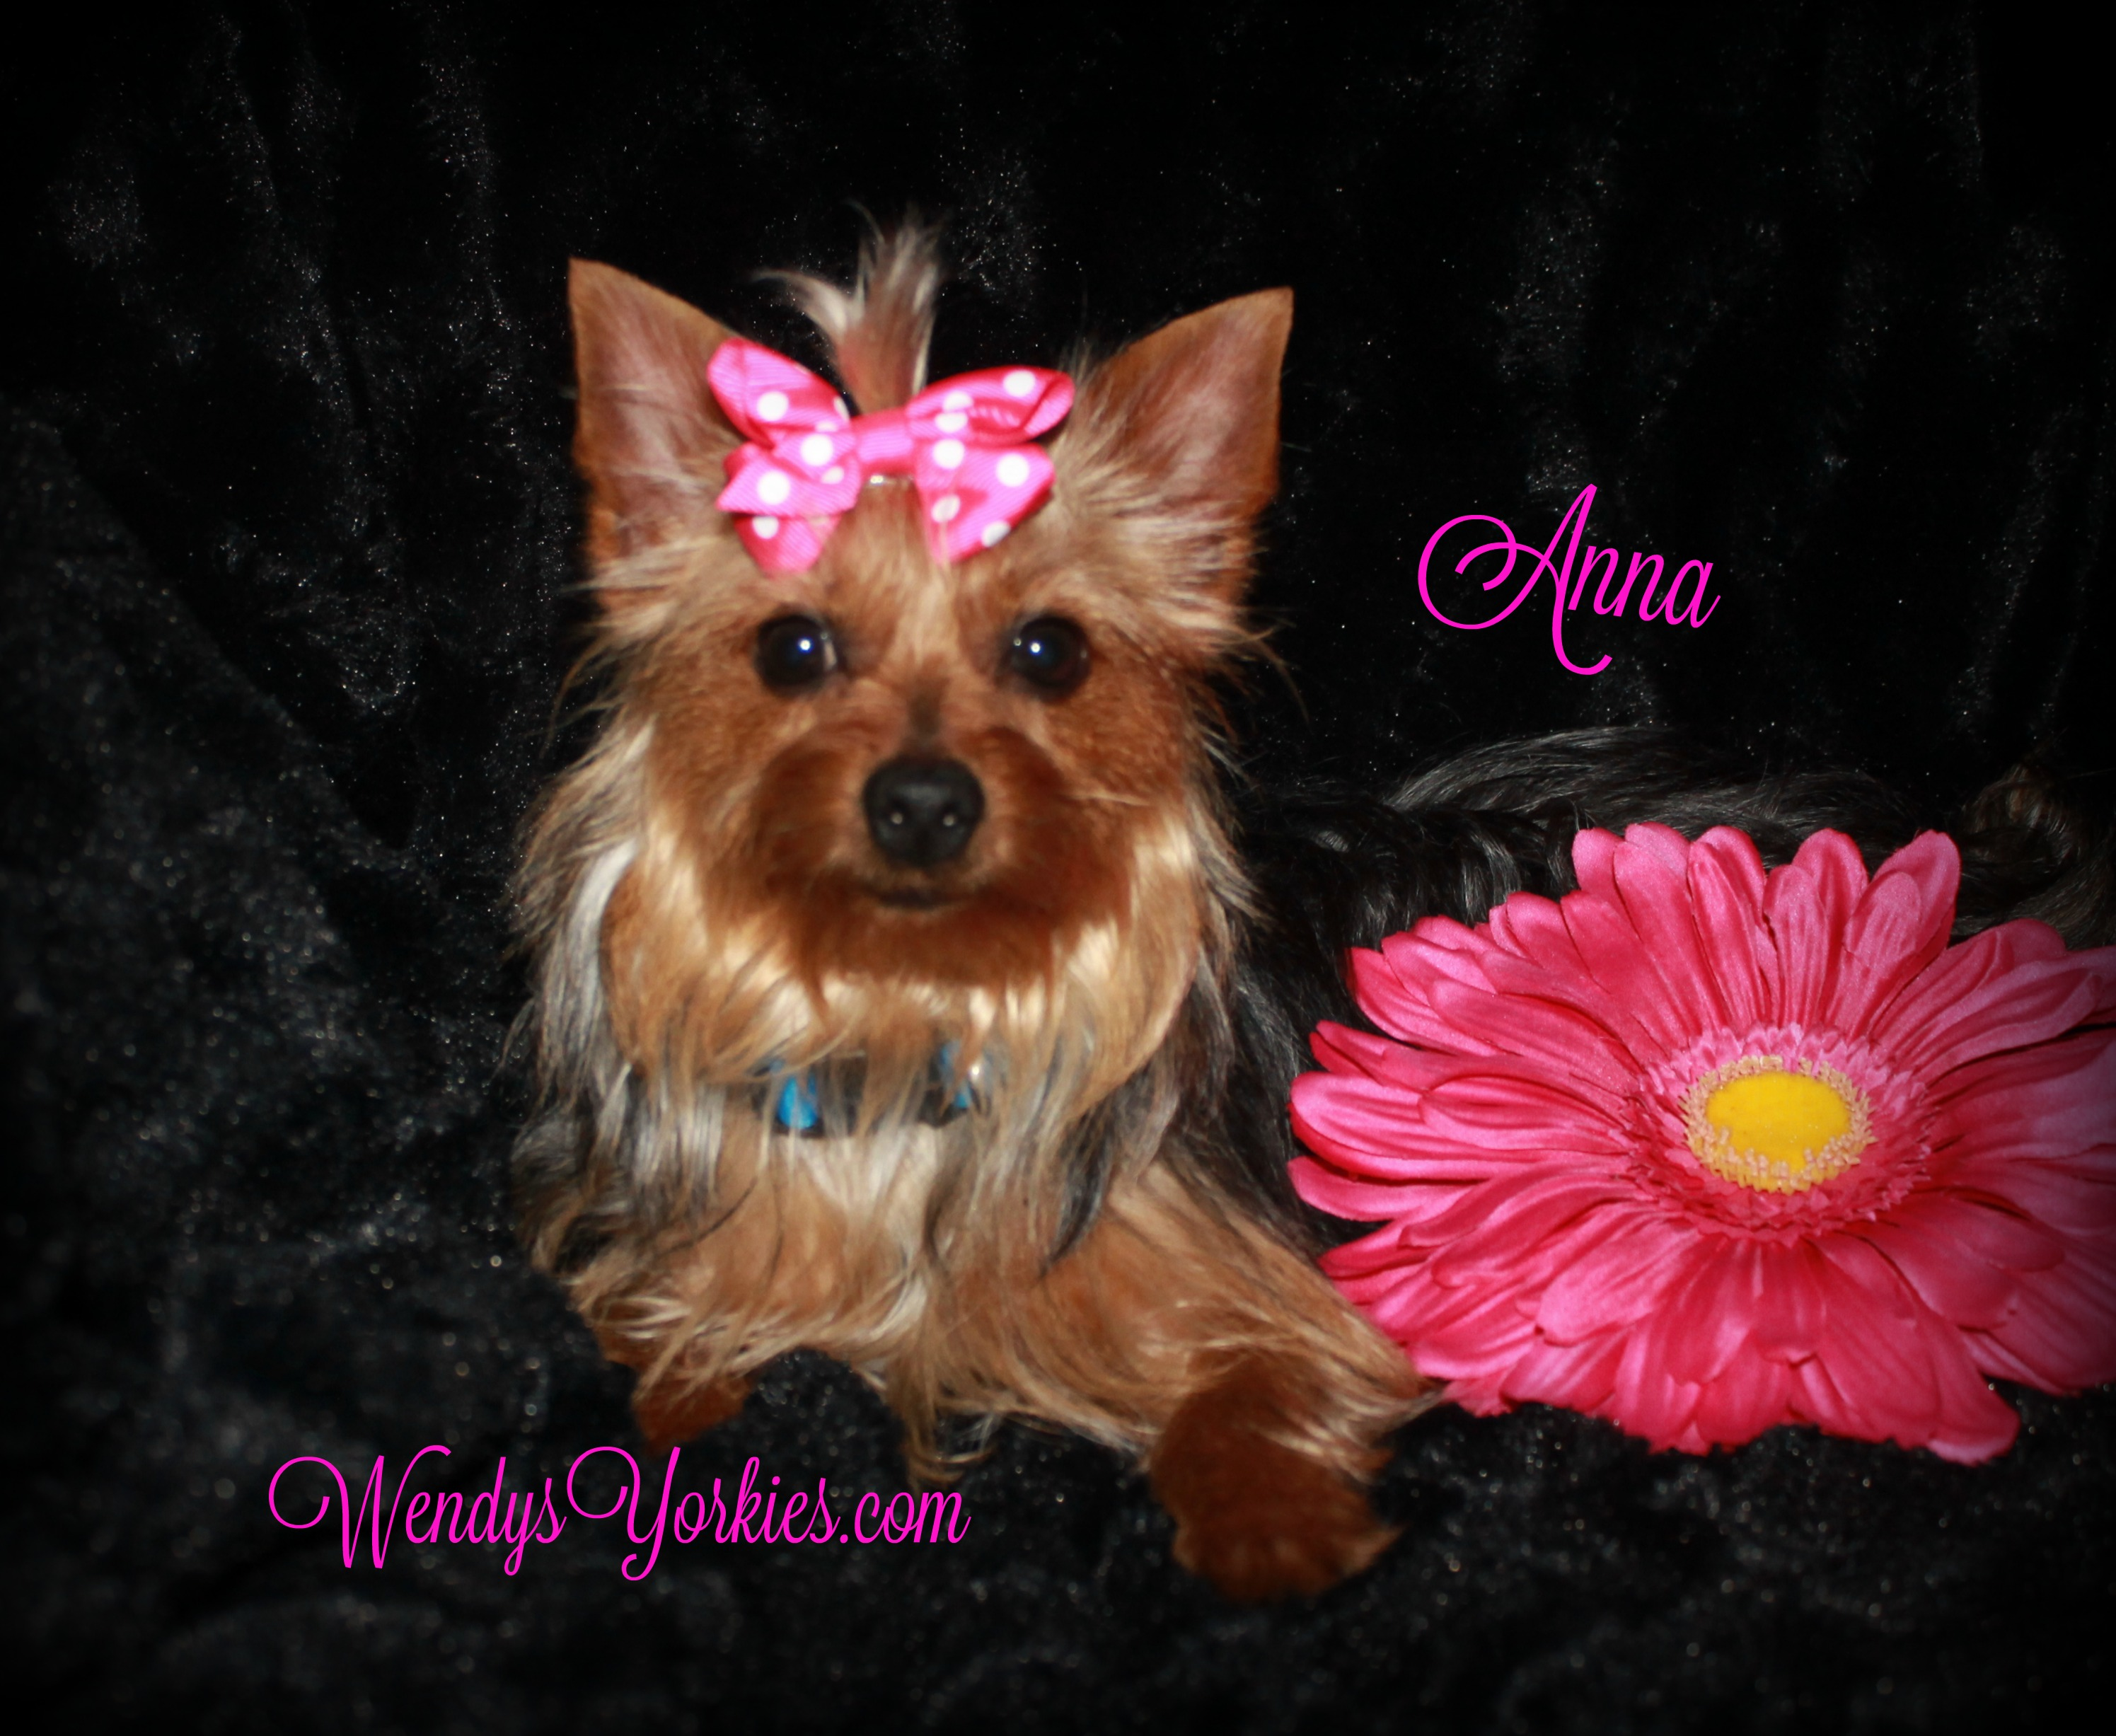 WendysYorkies.com, Yorkie puppy breeder in Texas, Anna